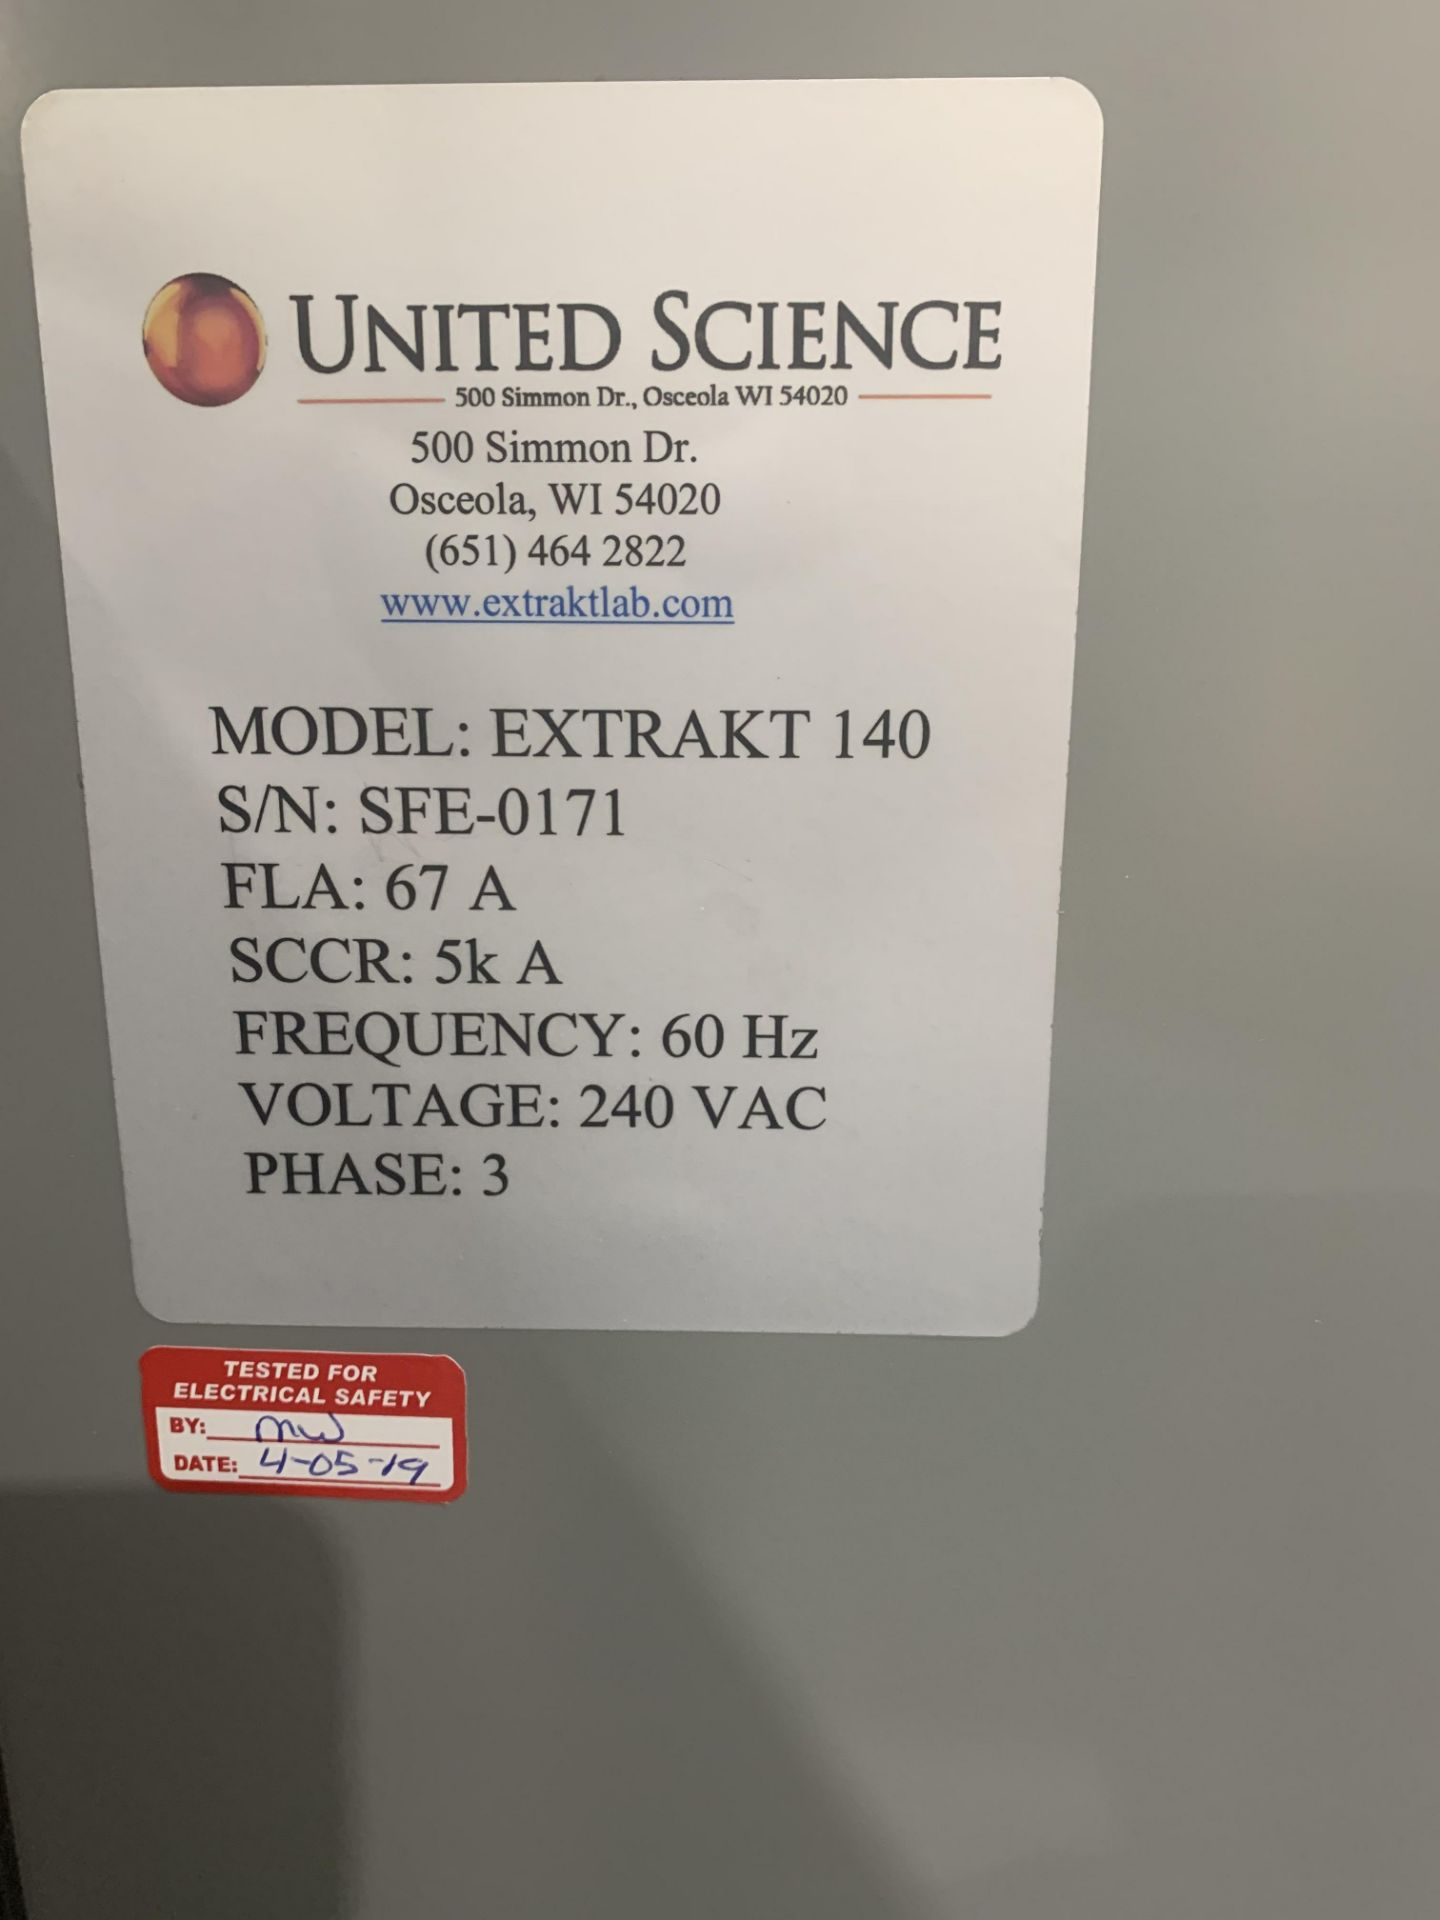 Used- ExtraktLAB Supercritical CO2 Extraction System with PolyScience Chiller Included. Model E-140 - Image 4 of 9